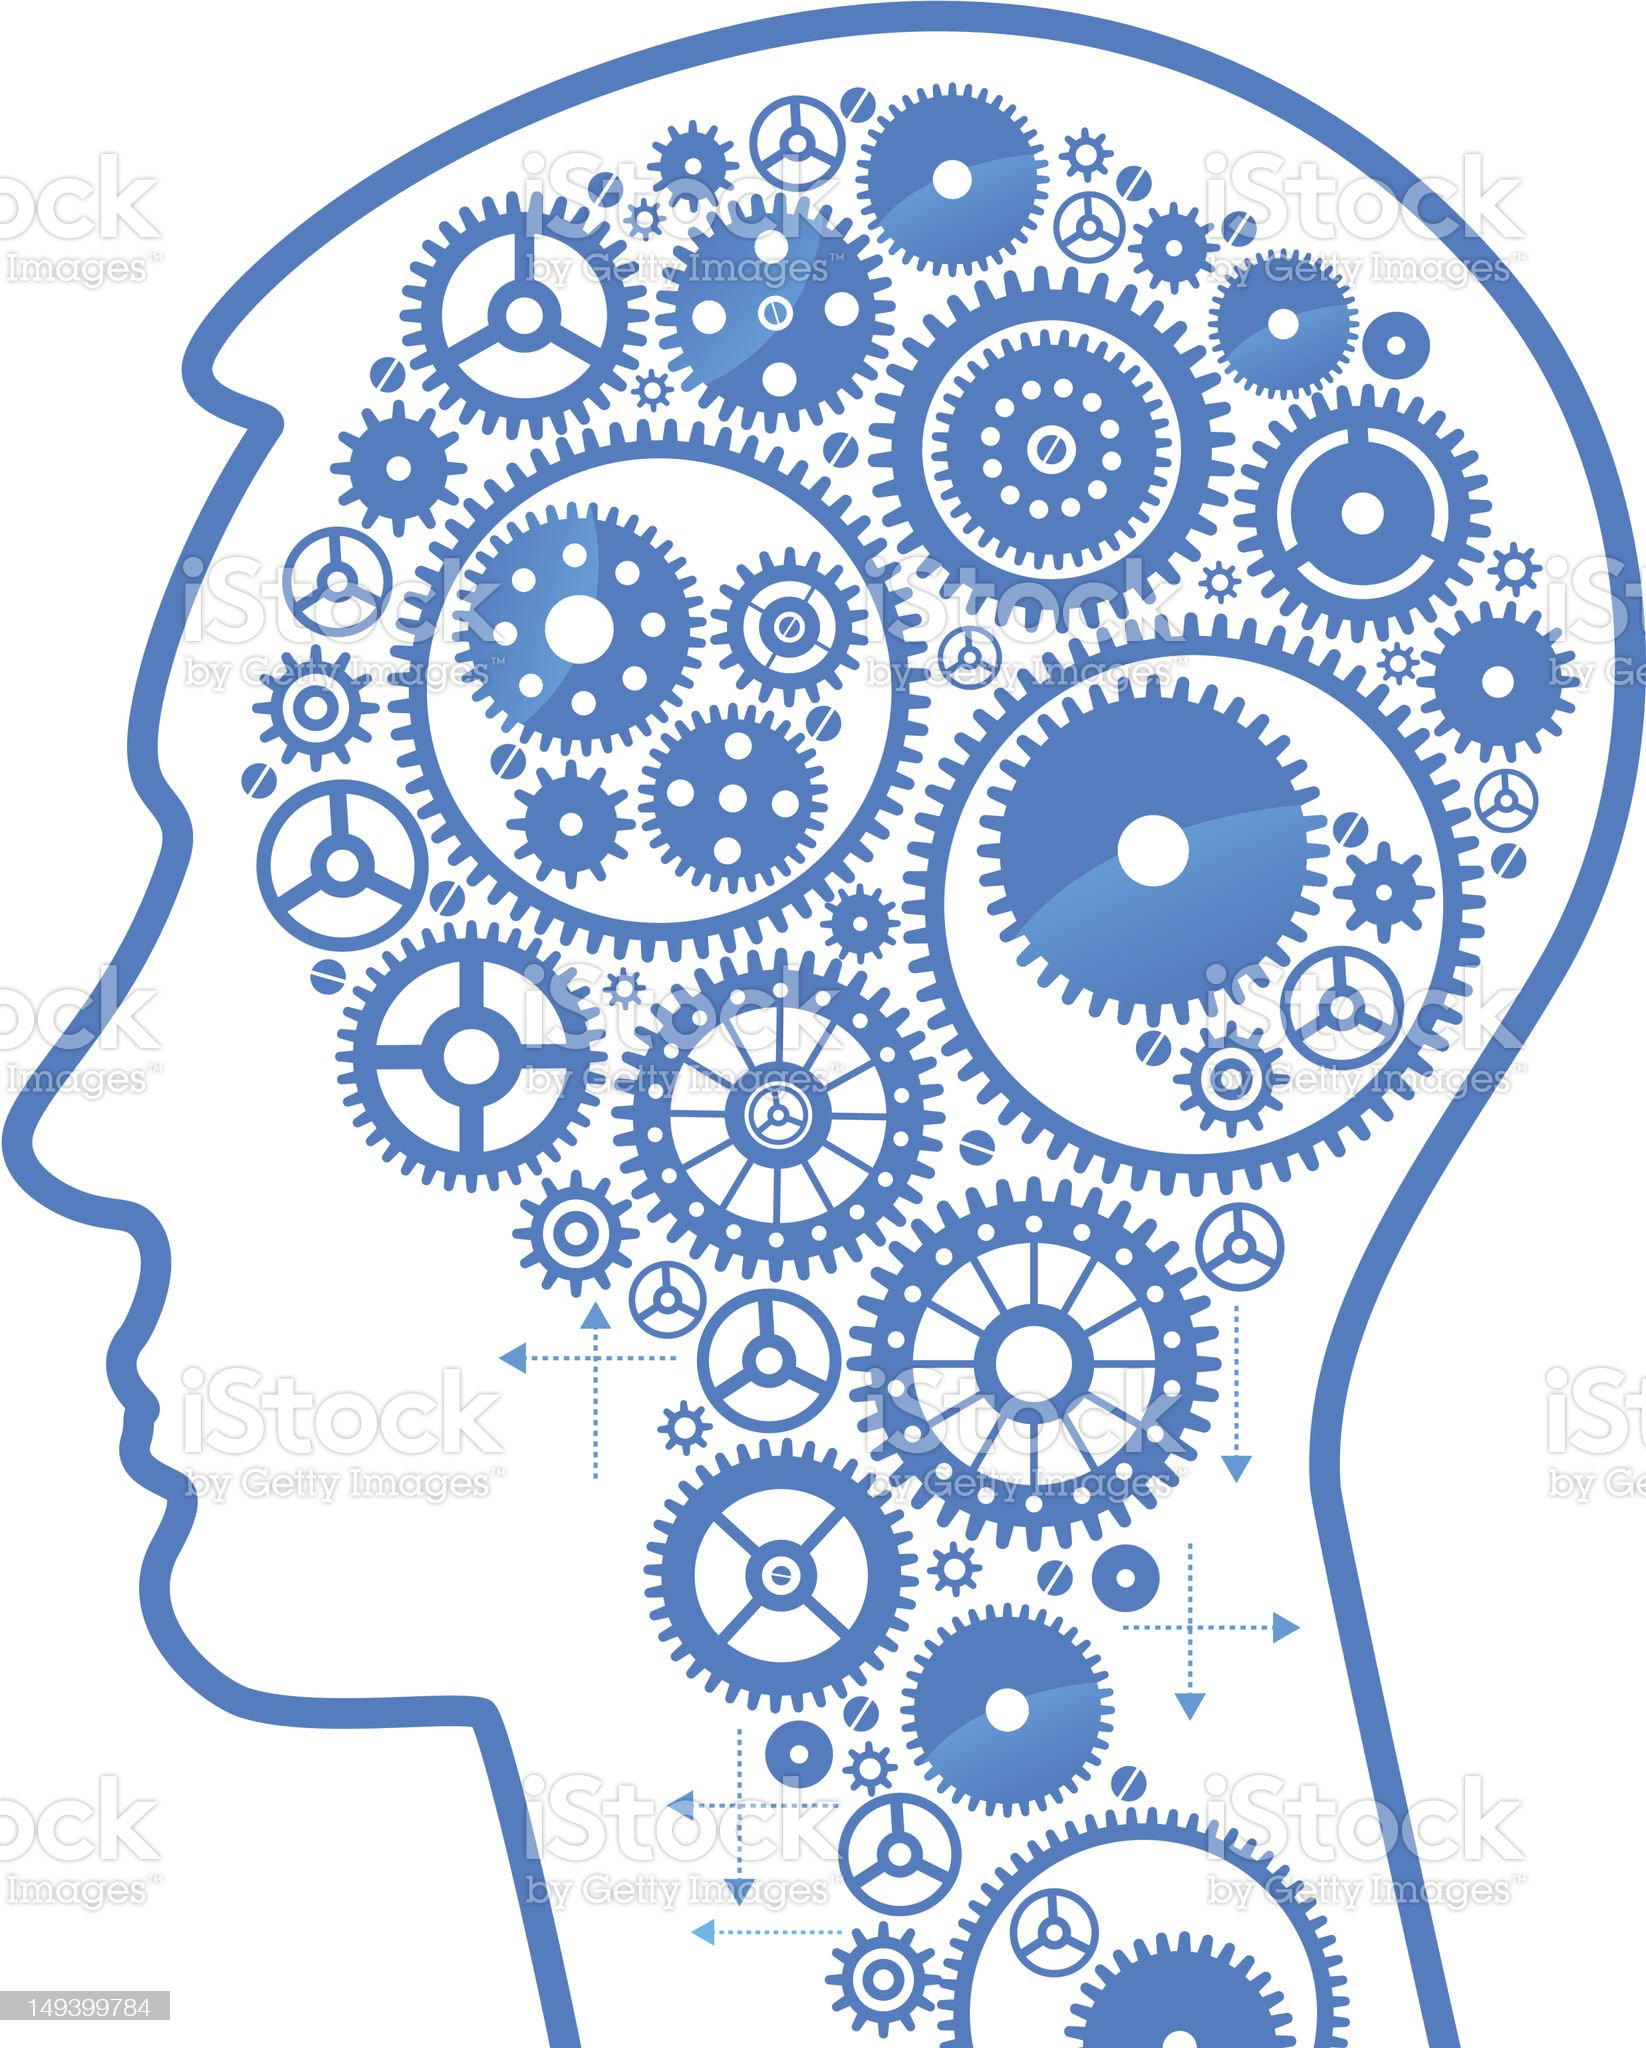 head and gears royalty-free stock vector art